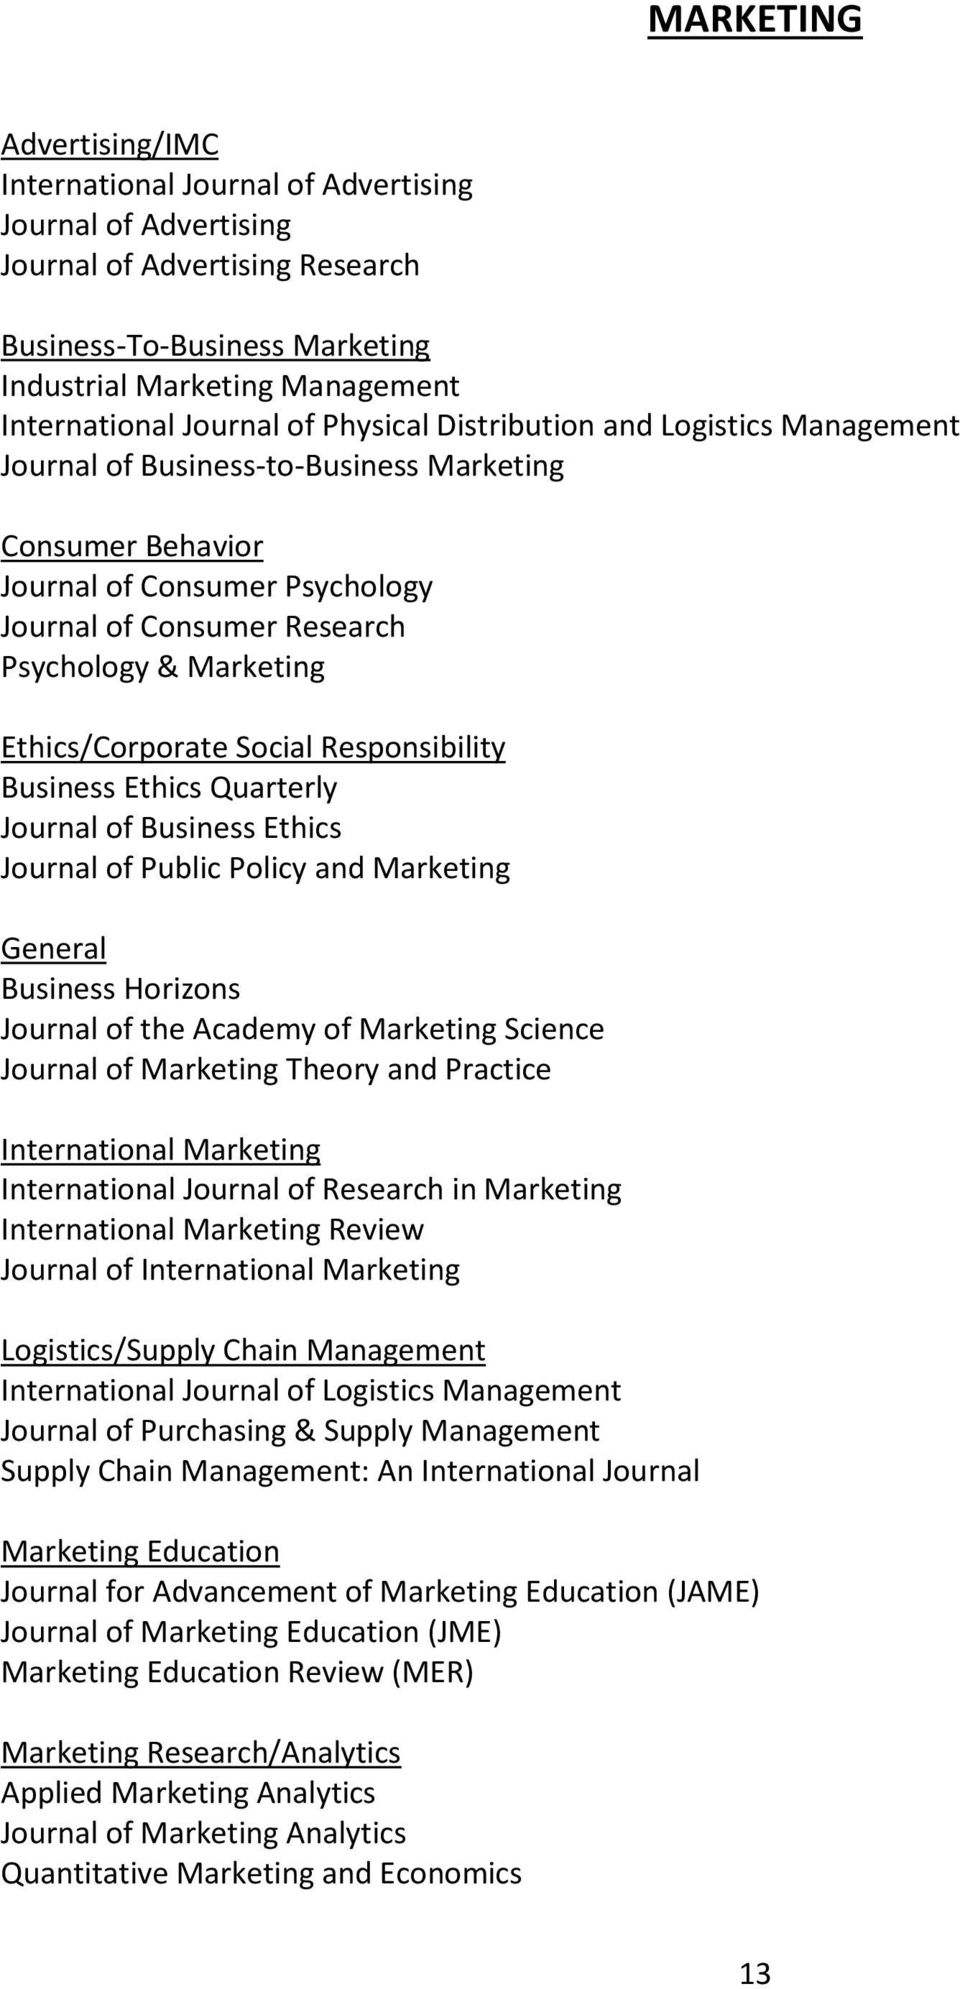 Marketing Ethics/Corporate Social Responsibility Business Ethics Quarterly Journal of Business Ethics Journal of Public Policy and Marketing General Business Horizons Journal of the Academy of